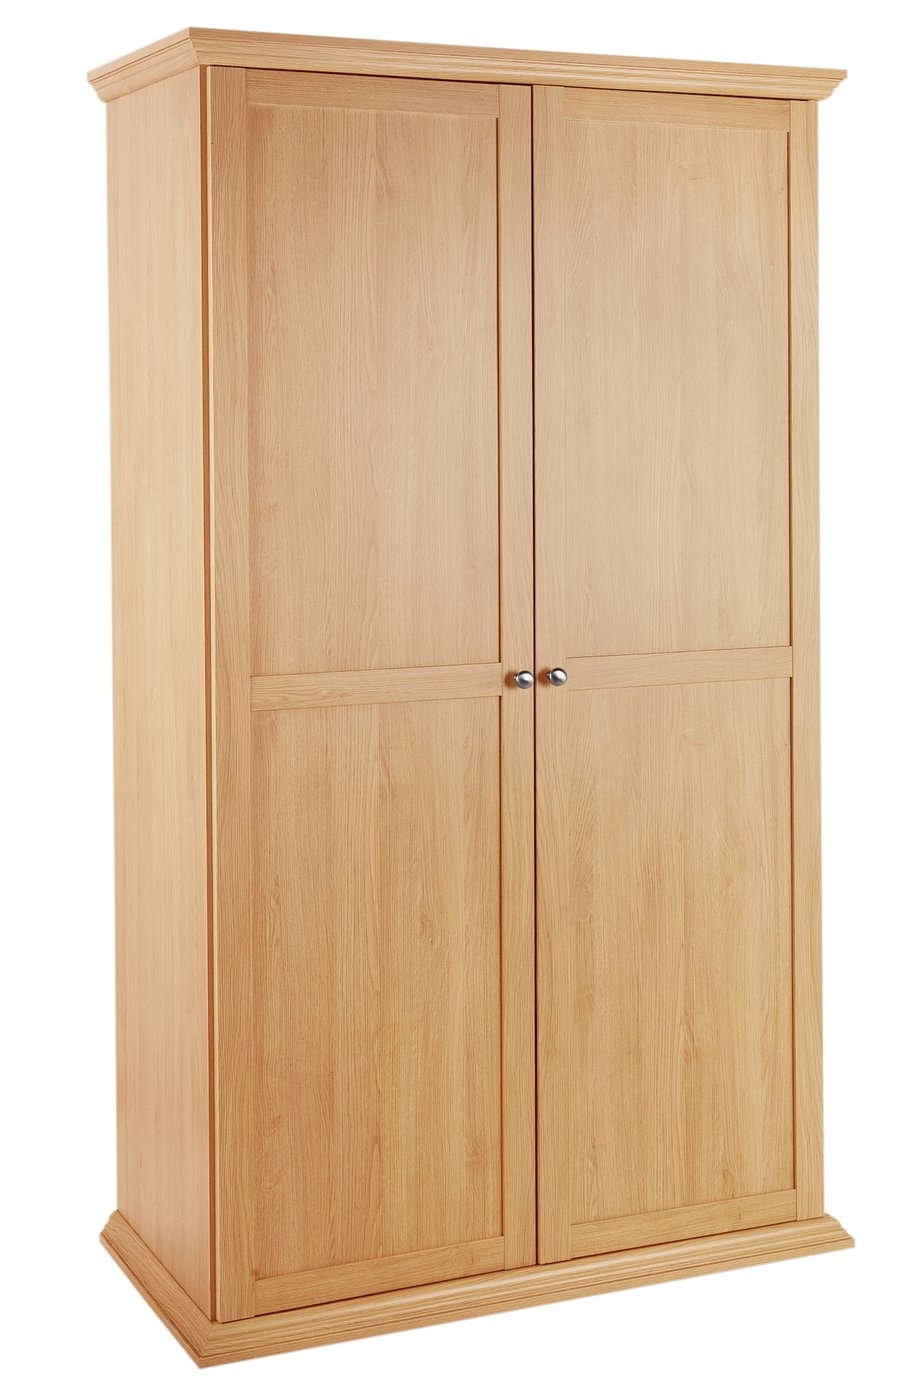 Argos Home Canterbury 2 Door Wardrobe